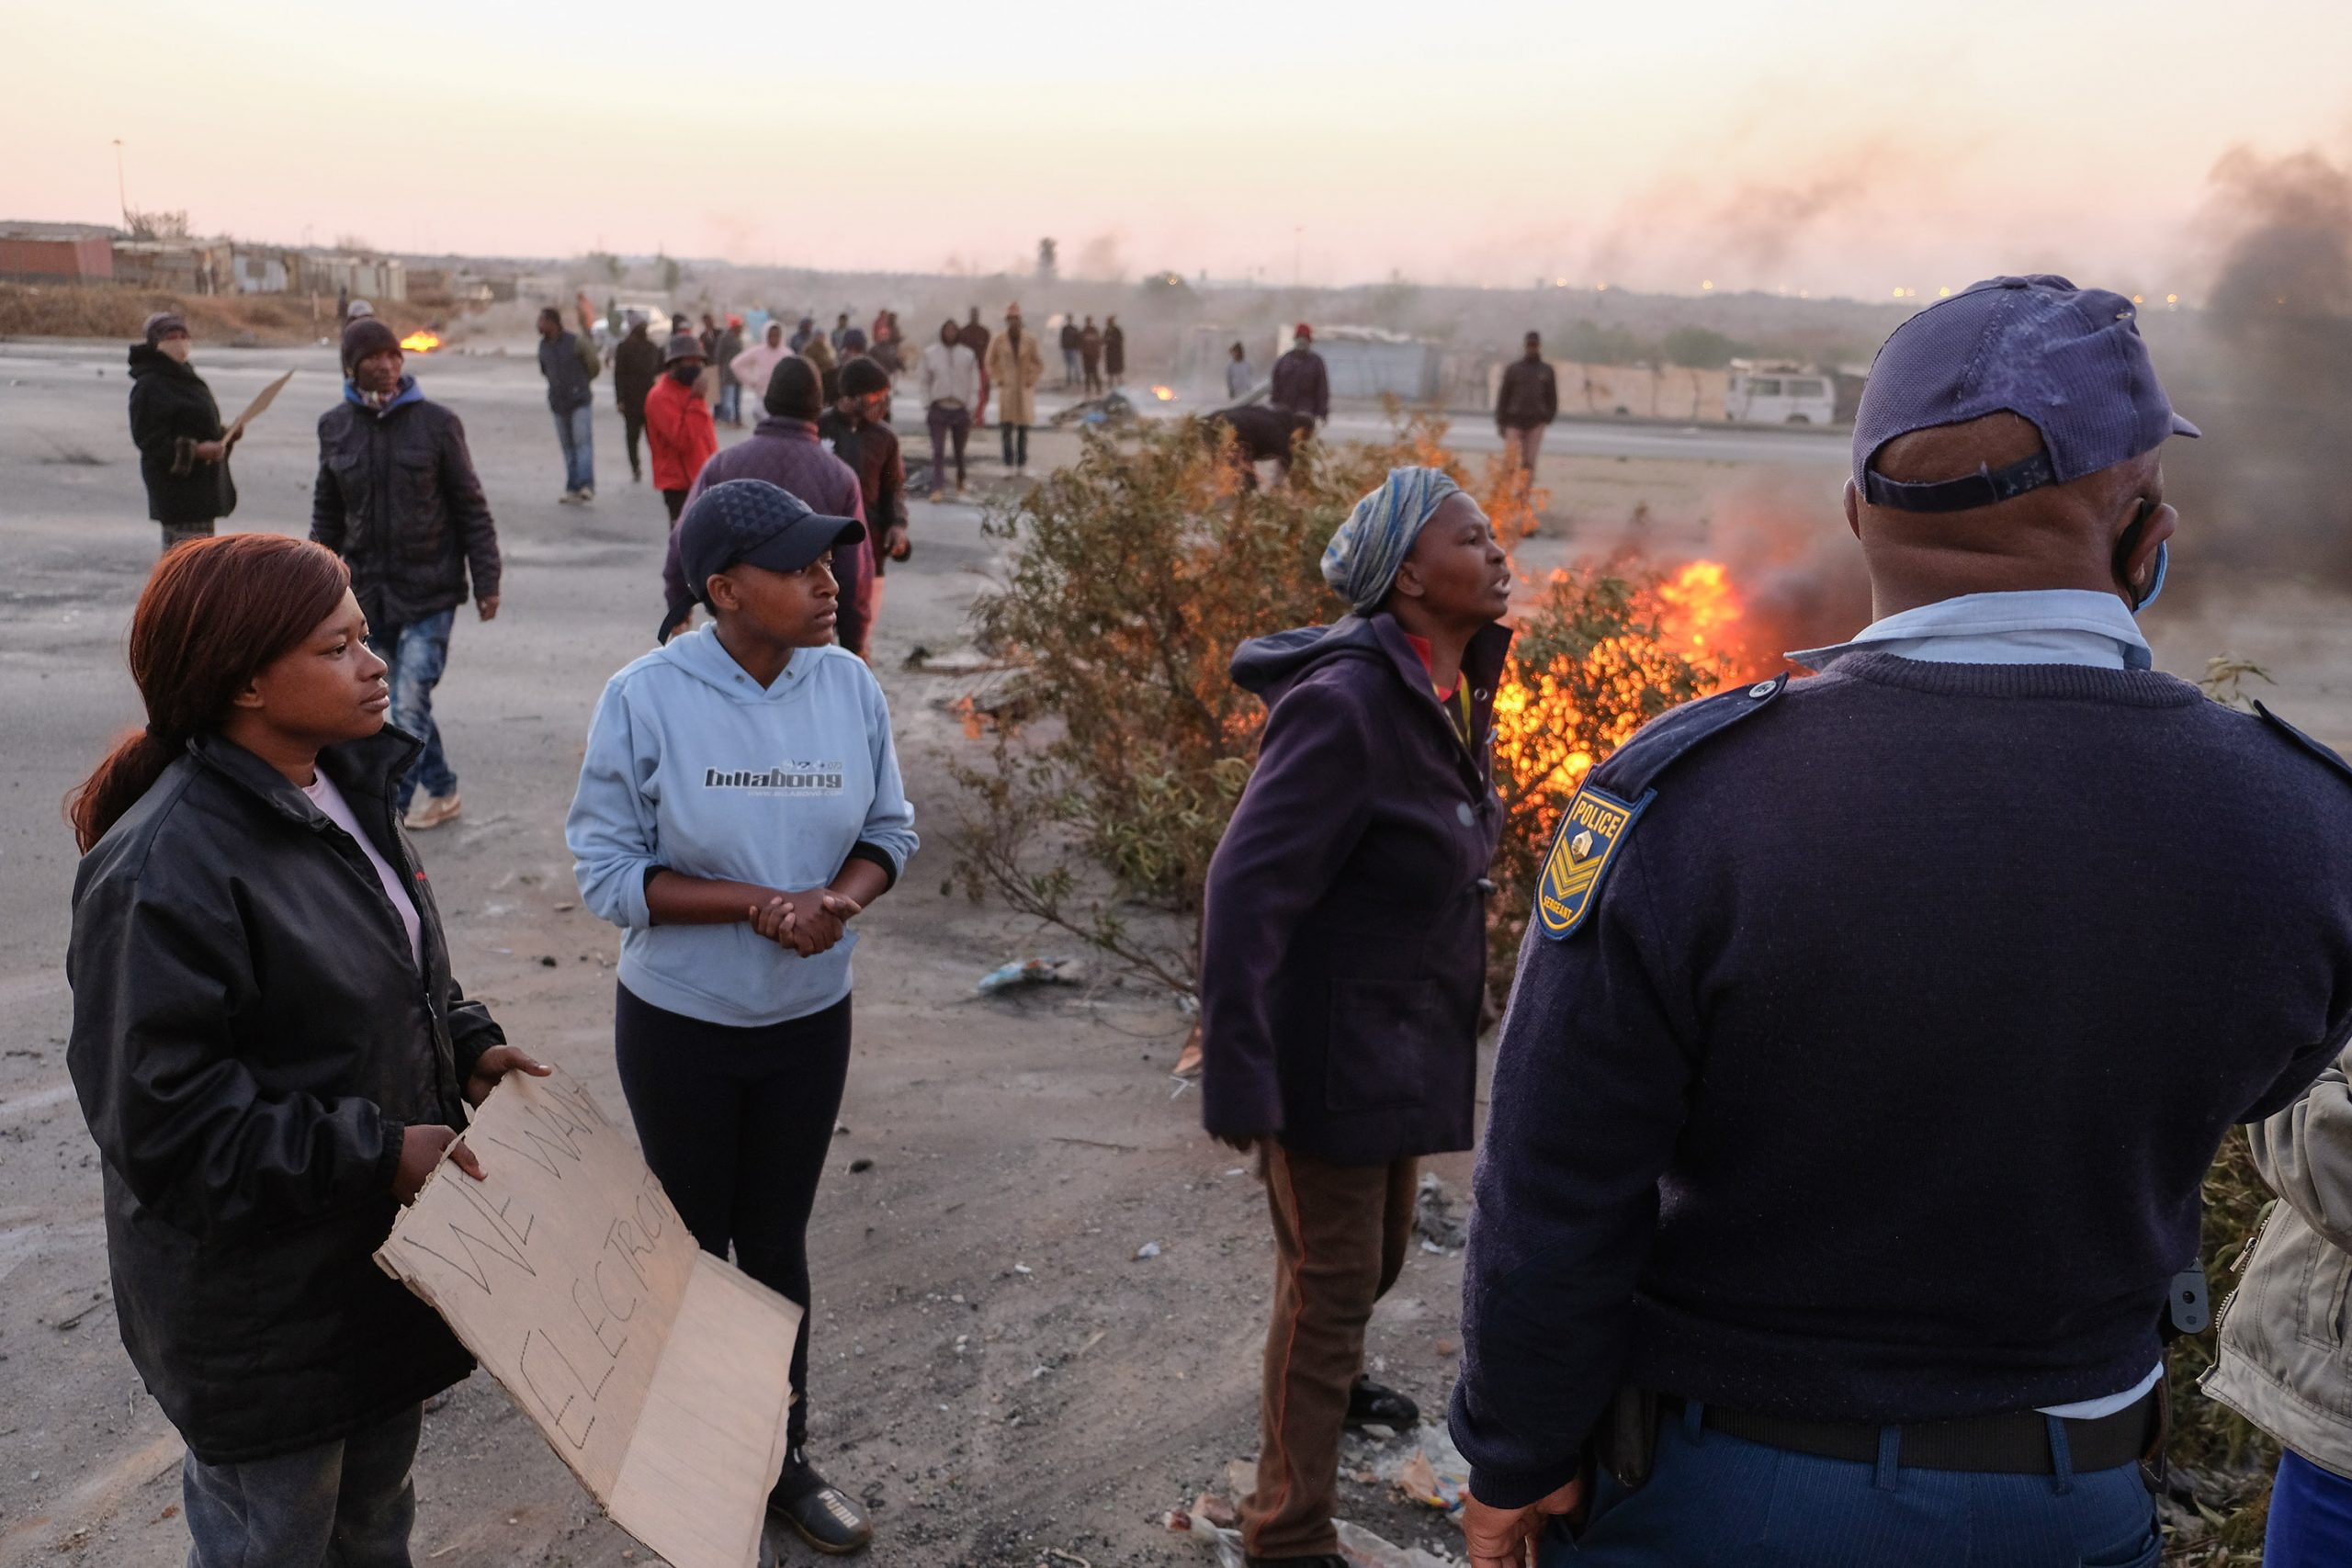 25 August 2020: Residents of the Doornkop shack settlement Tamara Bhengu* and Kelebogile and Constance Pogiso engage with the police before being fired at with rubber bullets and tear gas.